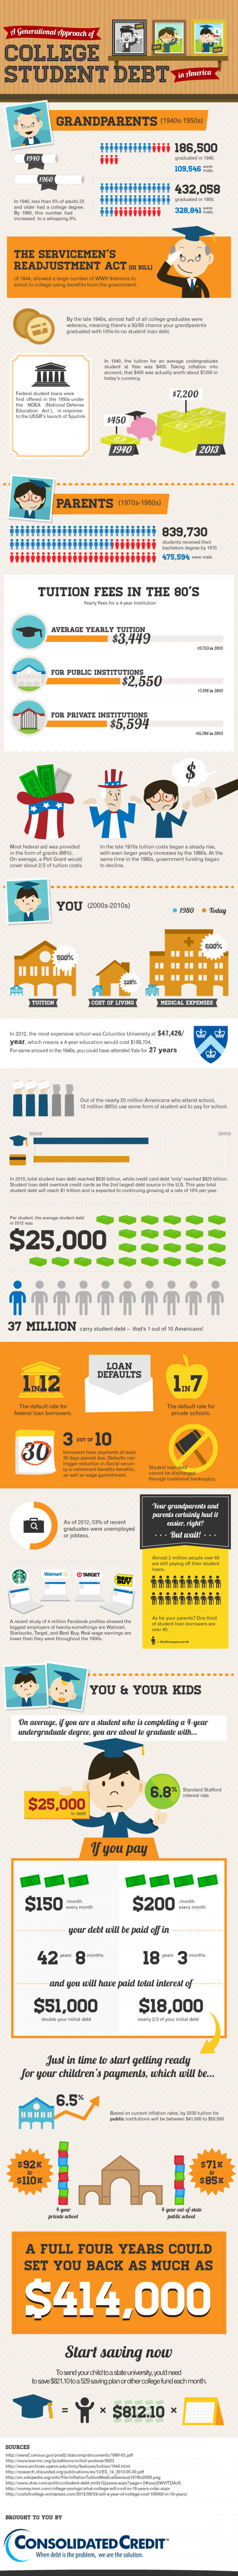 A Generational Approach of College Student Debt in America Infographic